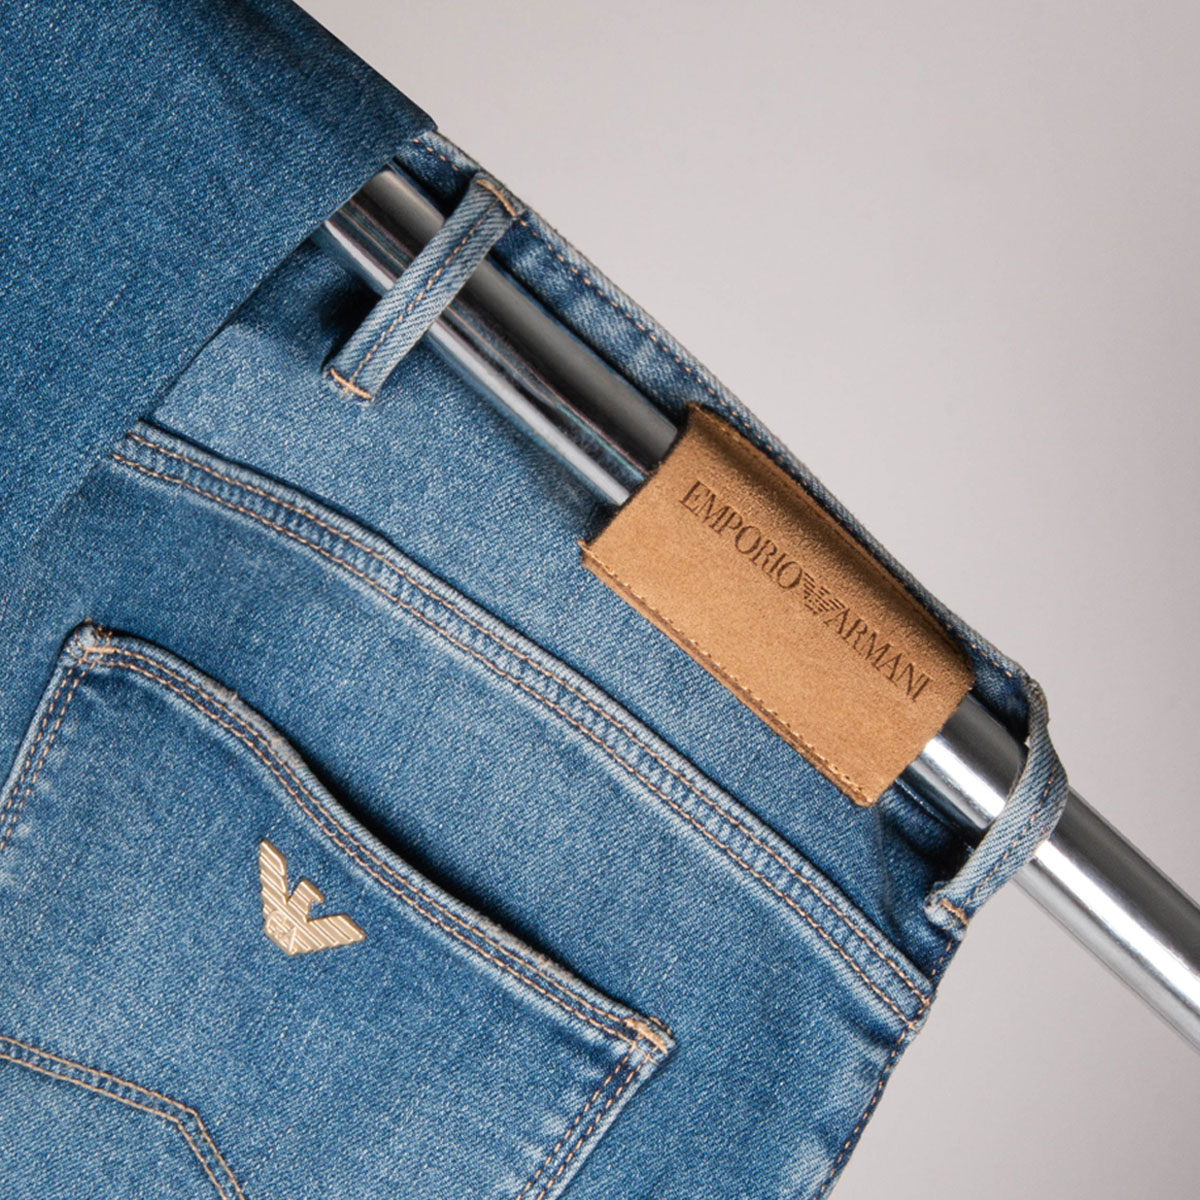 A close up of a pair of blue Emporio Armani jeans